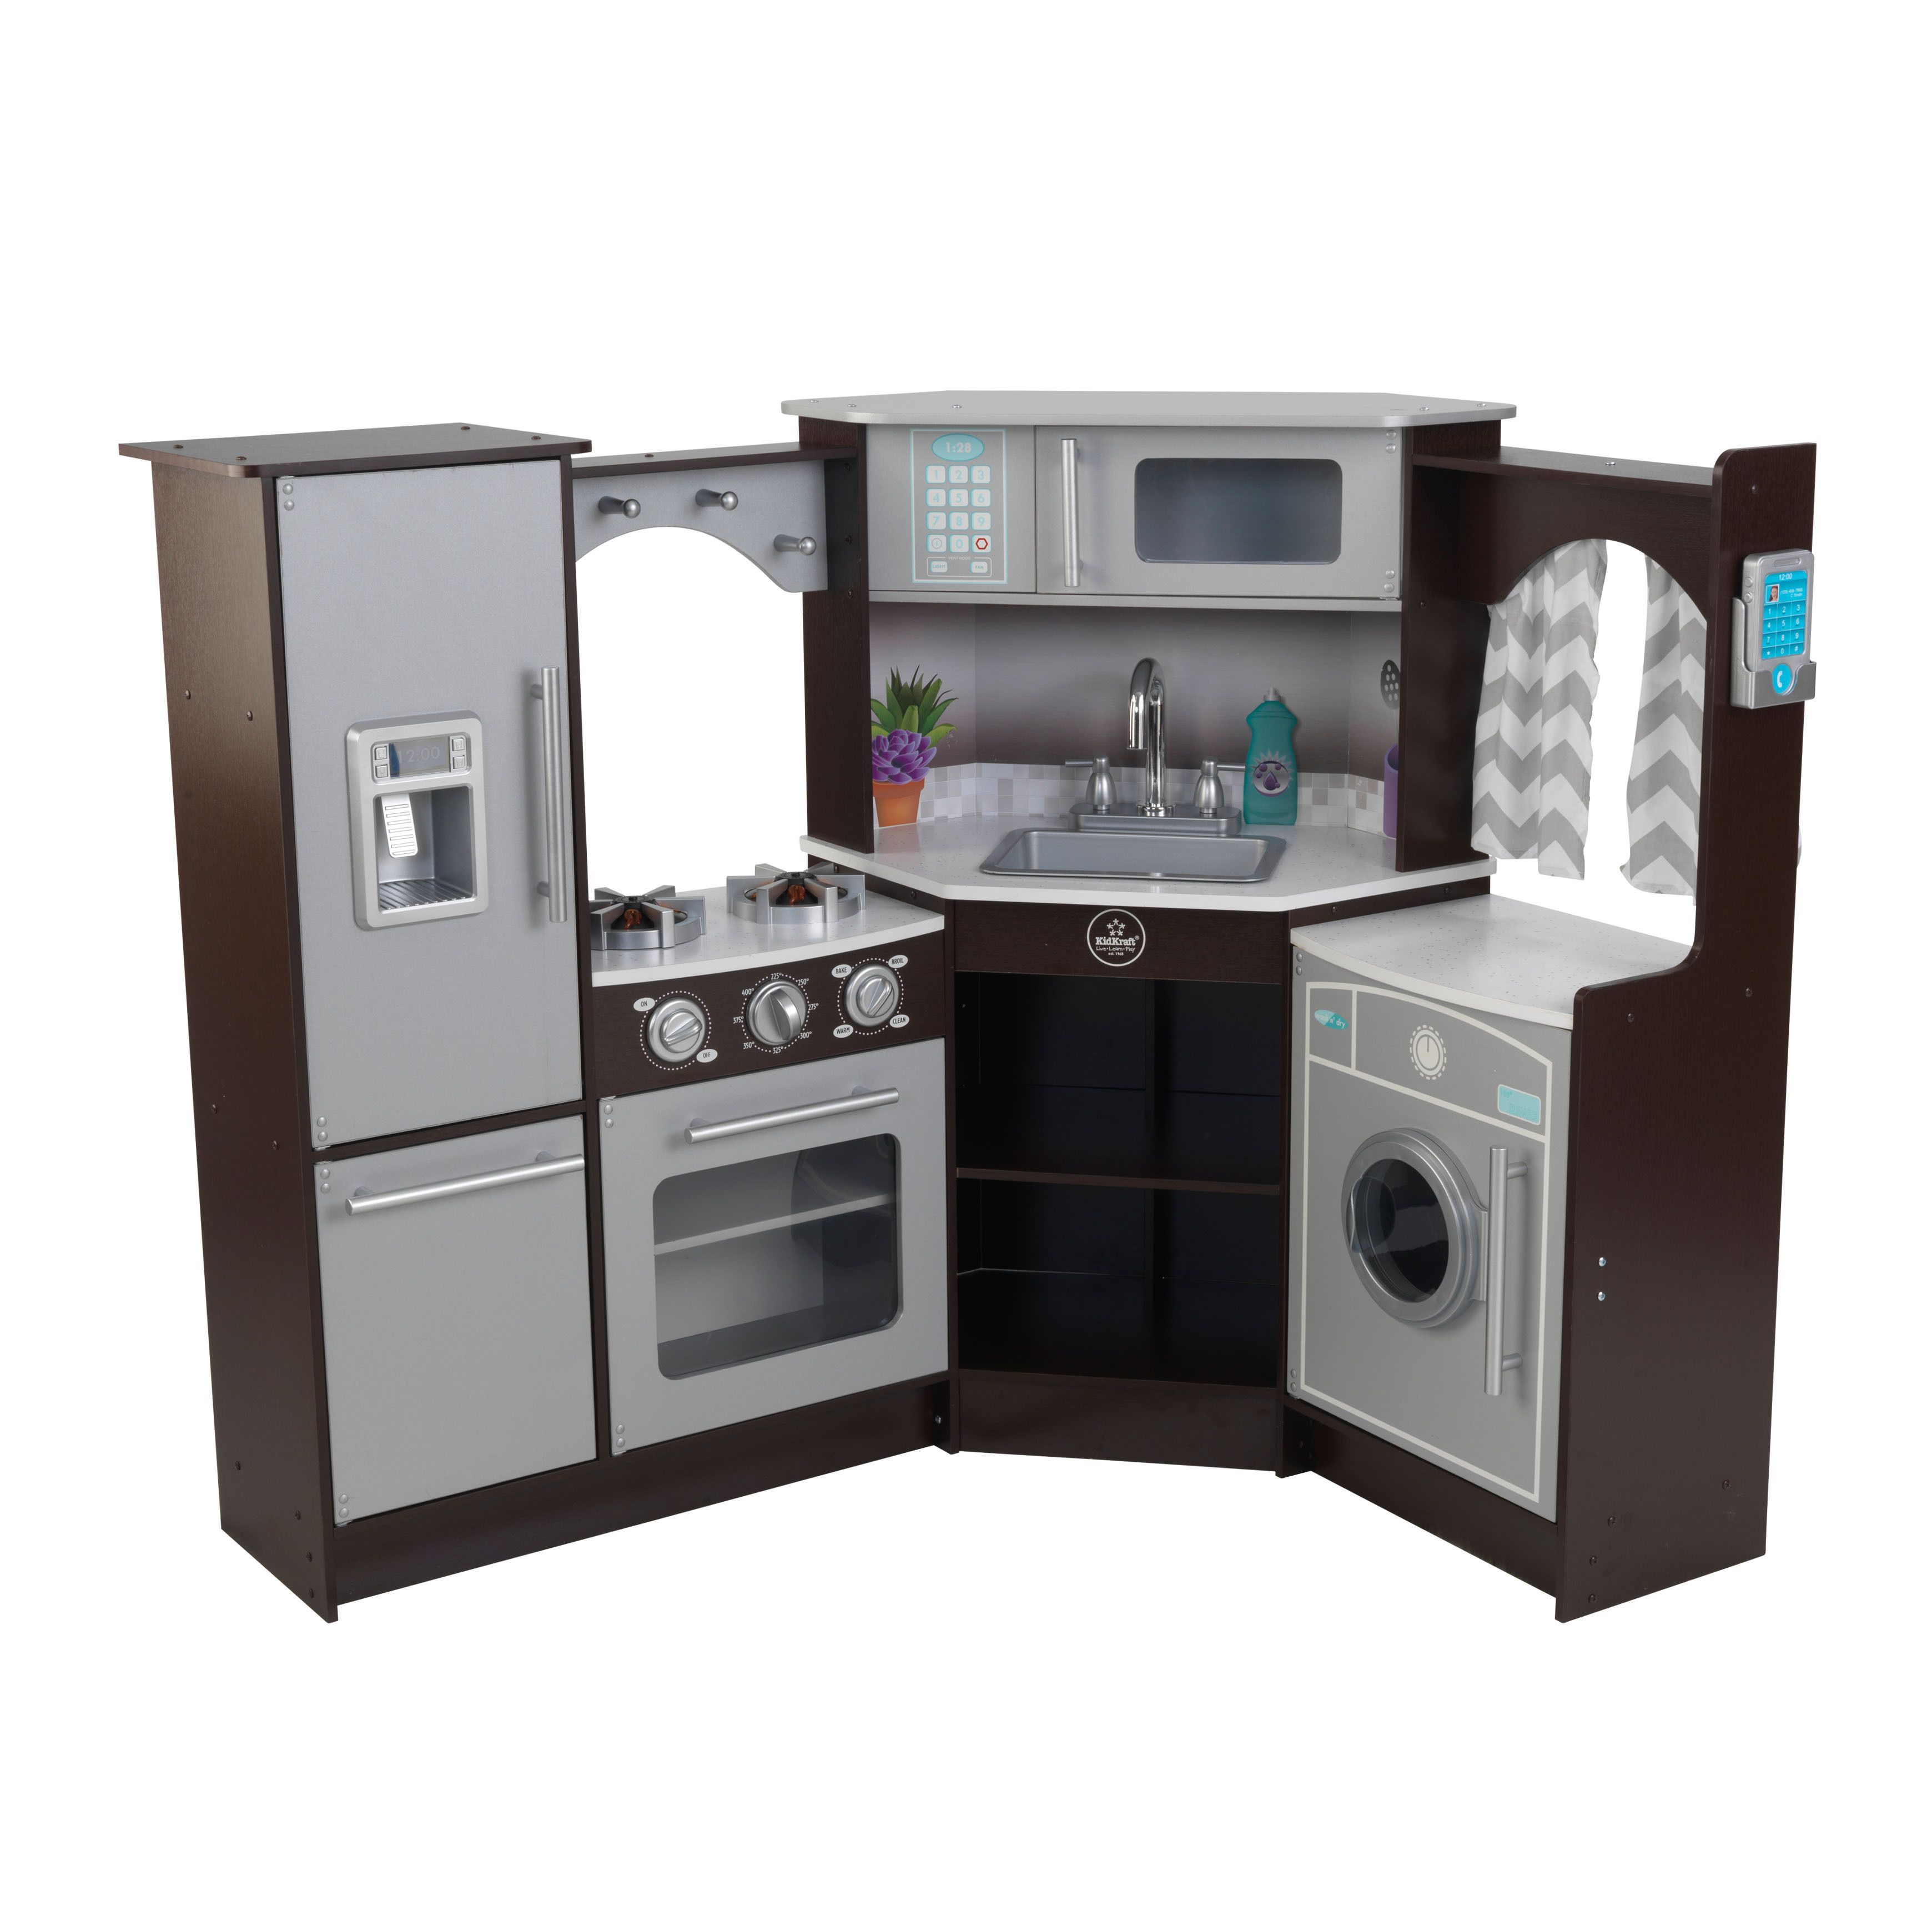 Encourage creative playtime with this toy kitchen which